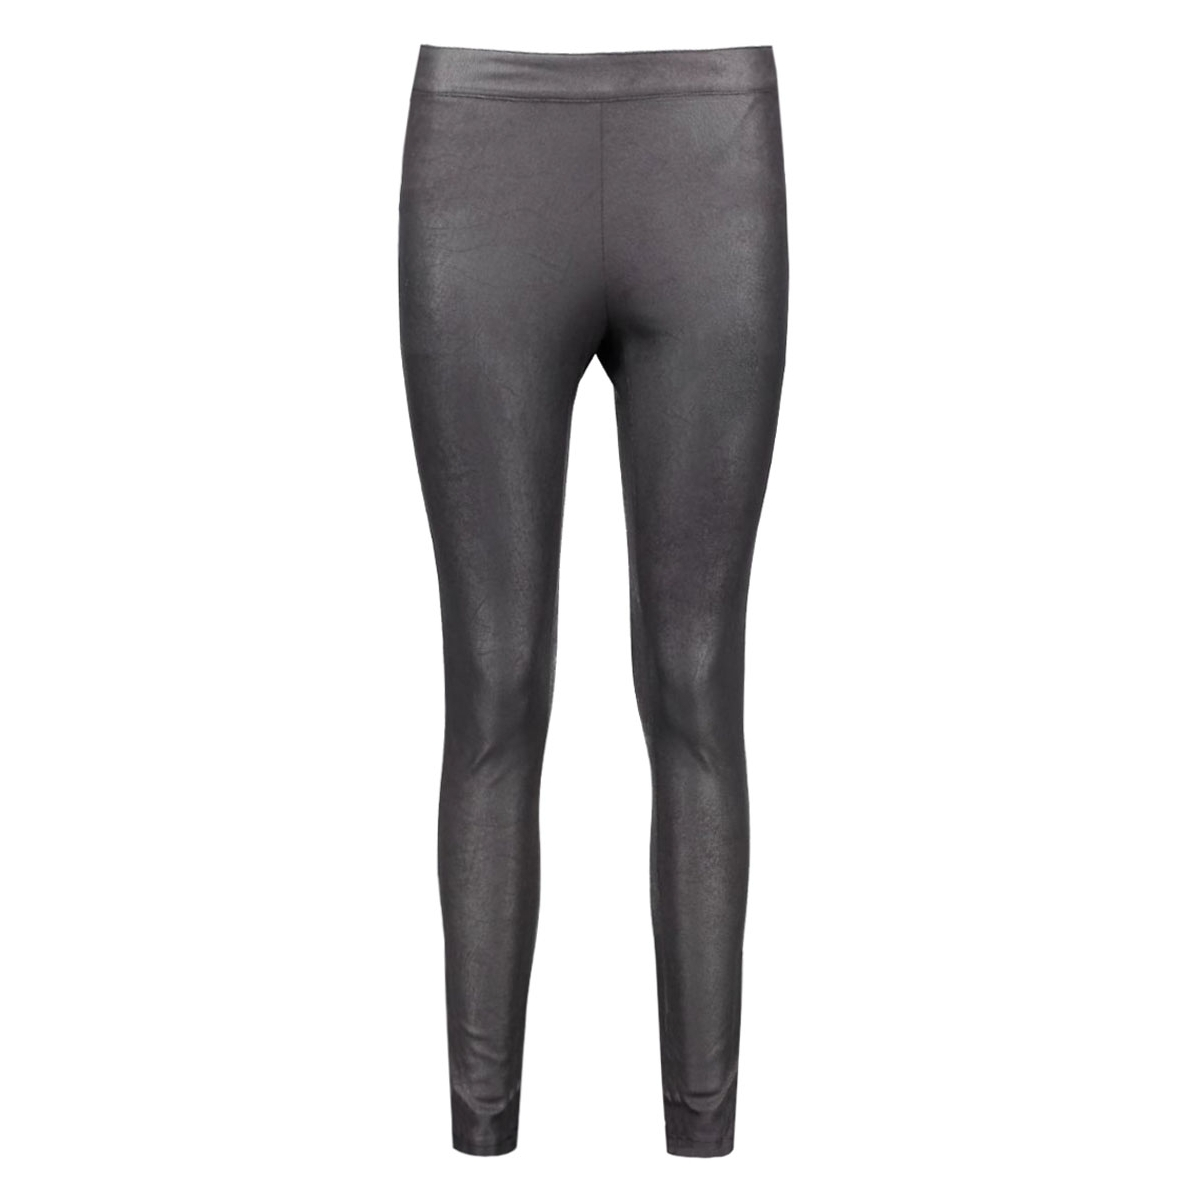 vibarra 7/8 leggings 14036215 vila legging black